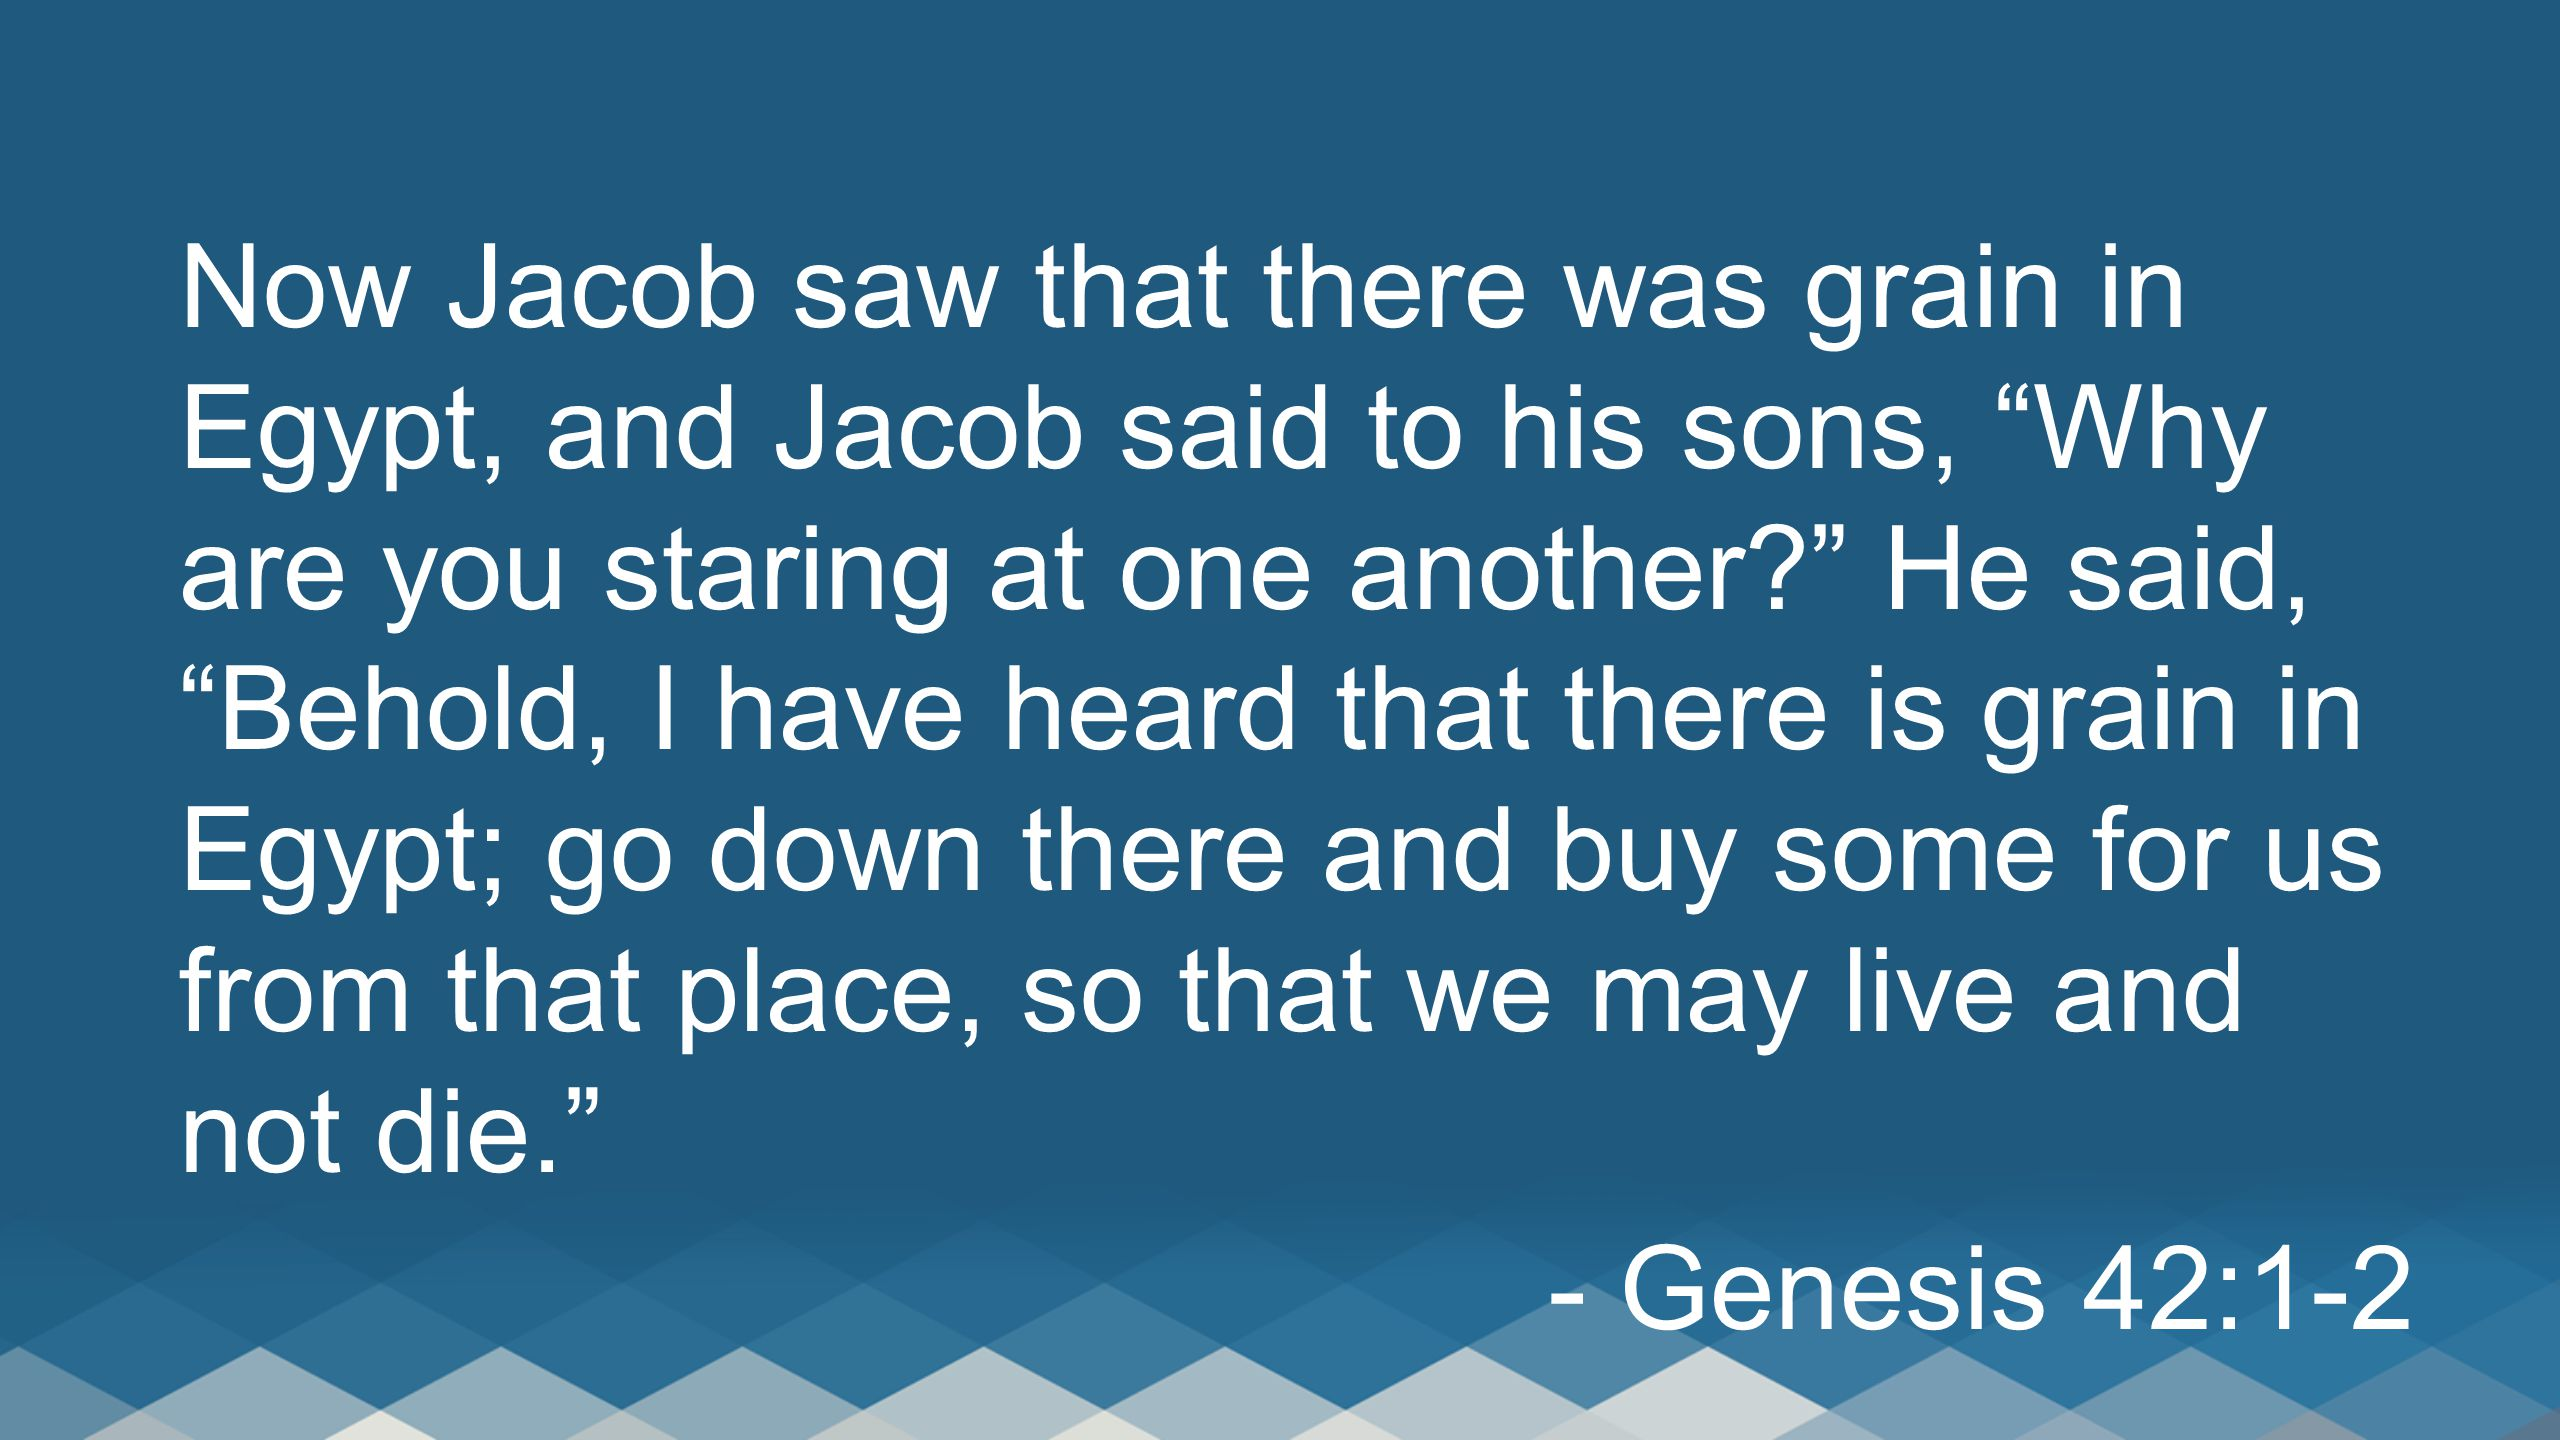 Now Jacob saw that there was grain in Egypt, and Jacob said to his sons, Why are you staring at one another He said, Behold, I have heard that there is grain in Egypt; go down there and buy some for us from that place, so that we may live and not die.